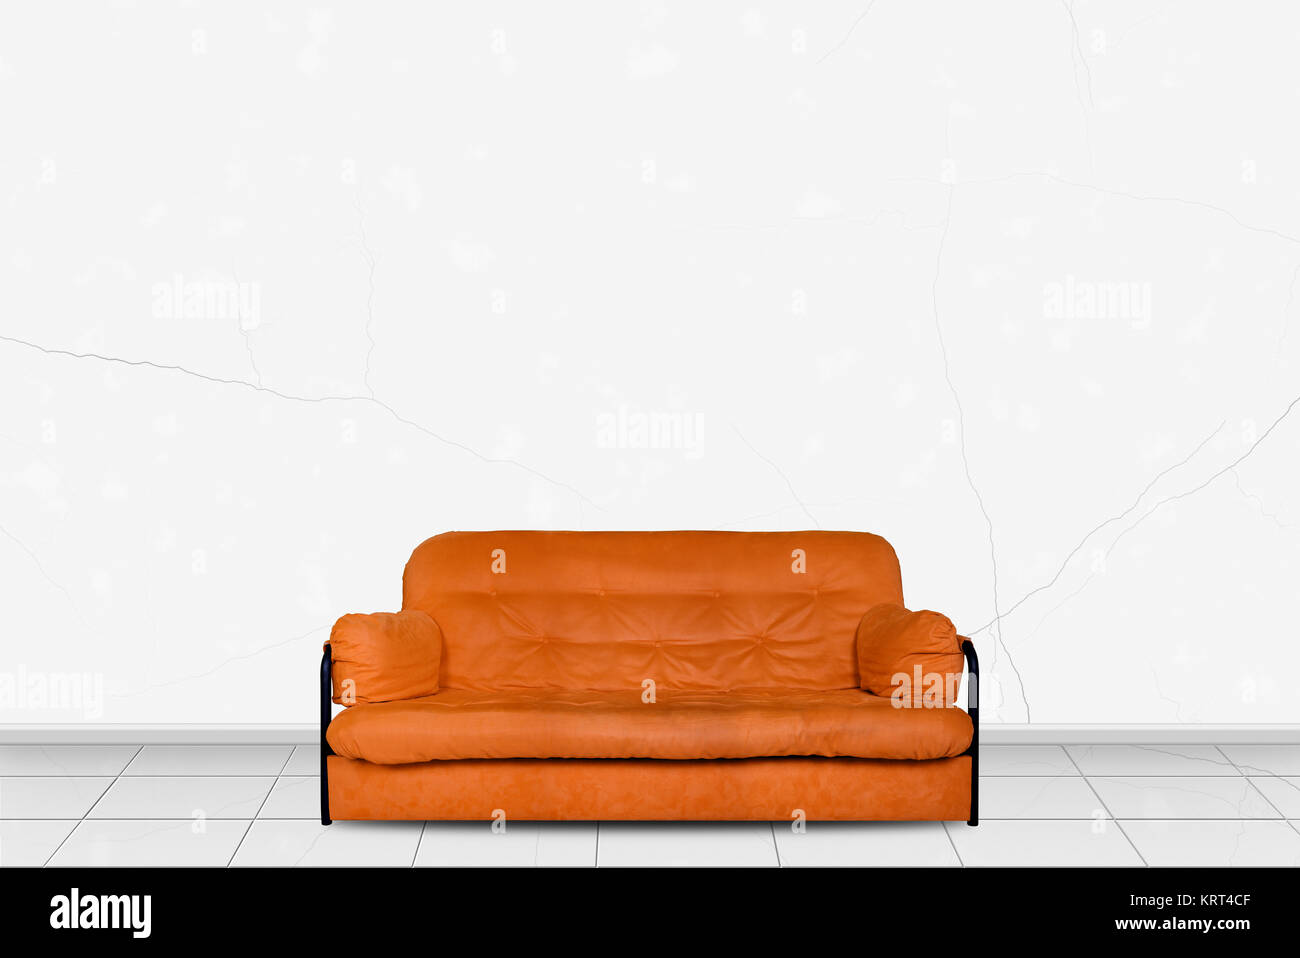 Polstermöbel In Home Interior Orange Moderne Divan Sofa Stoff Vor